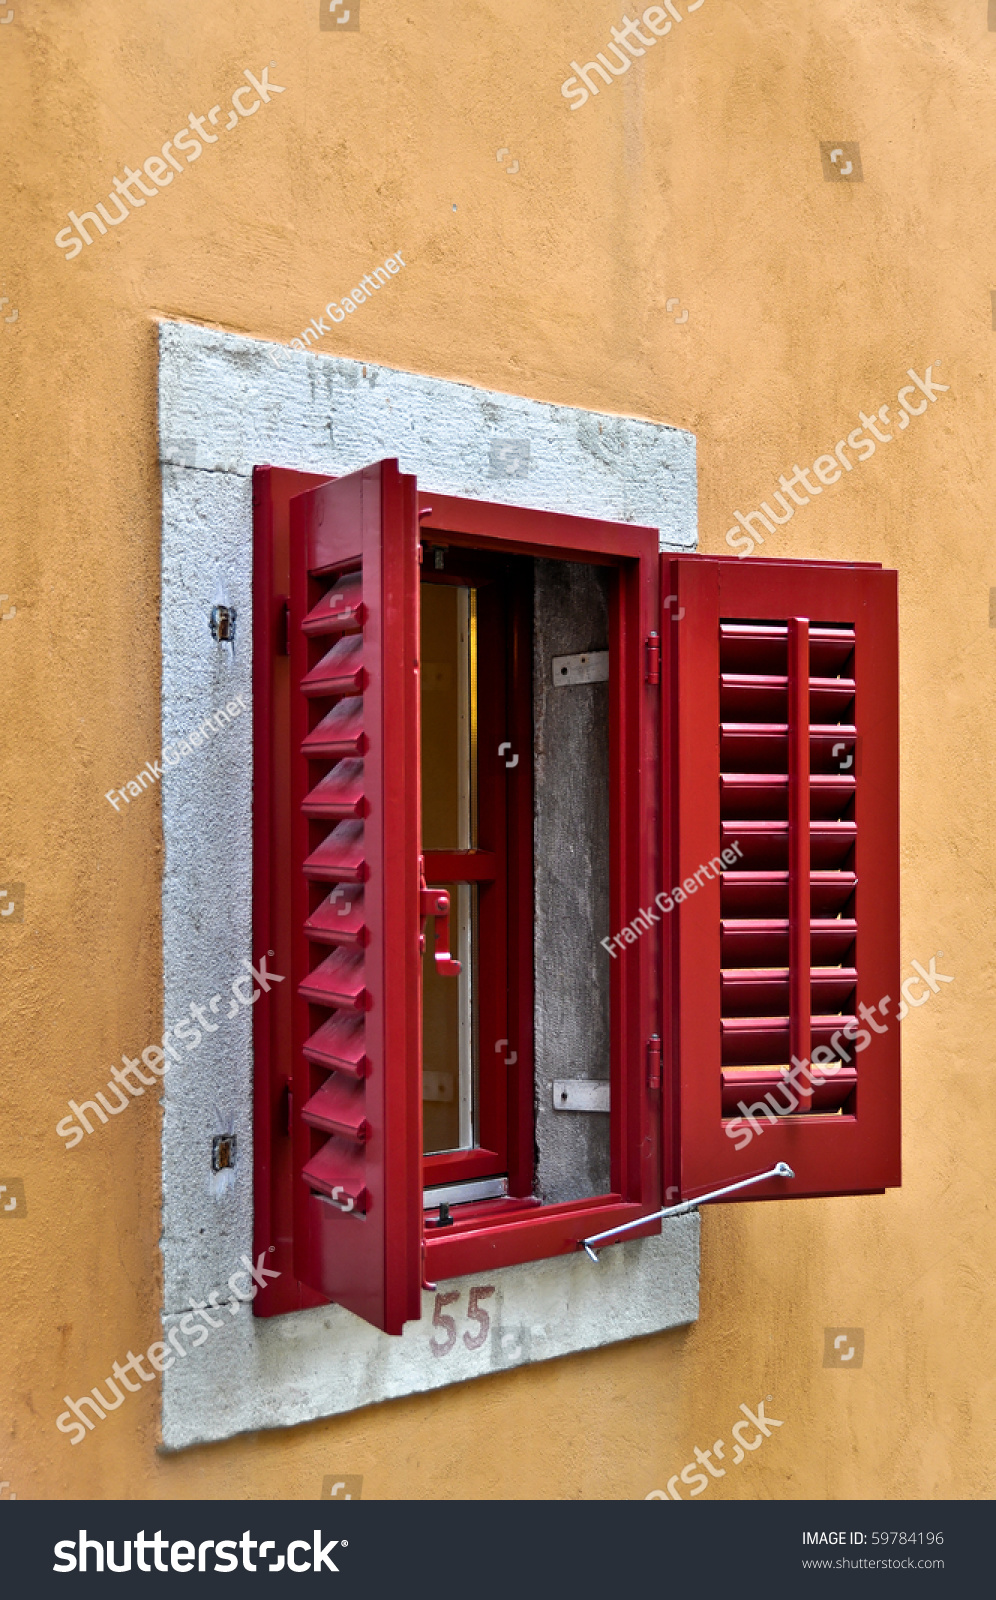 Red Window Shutters Opened On Bright Stock Photo 59784196